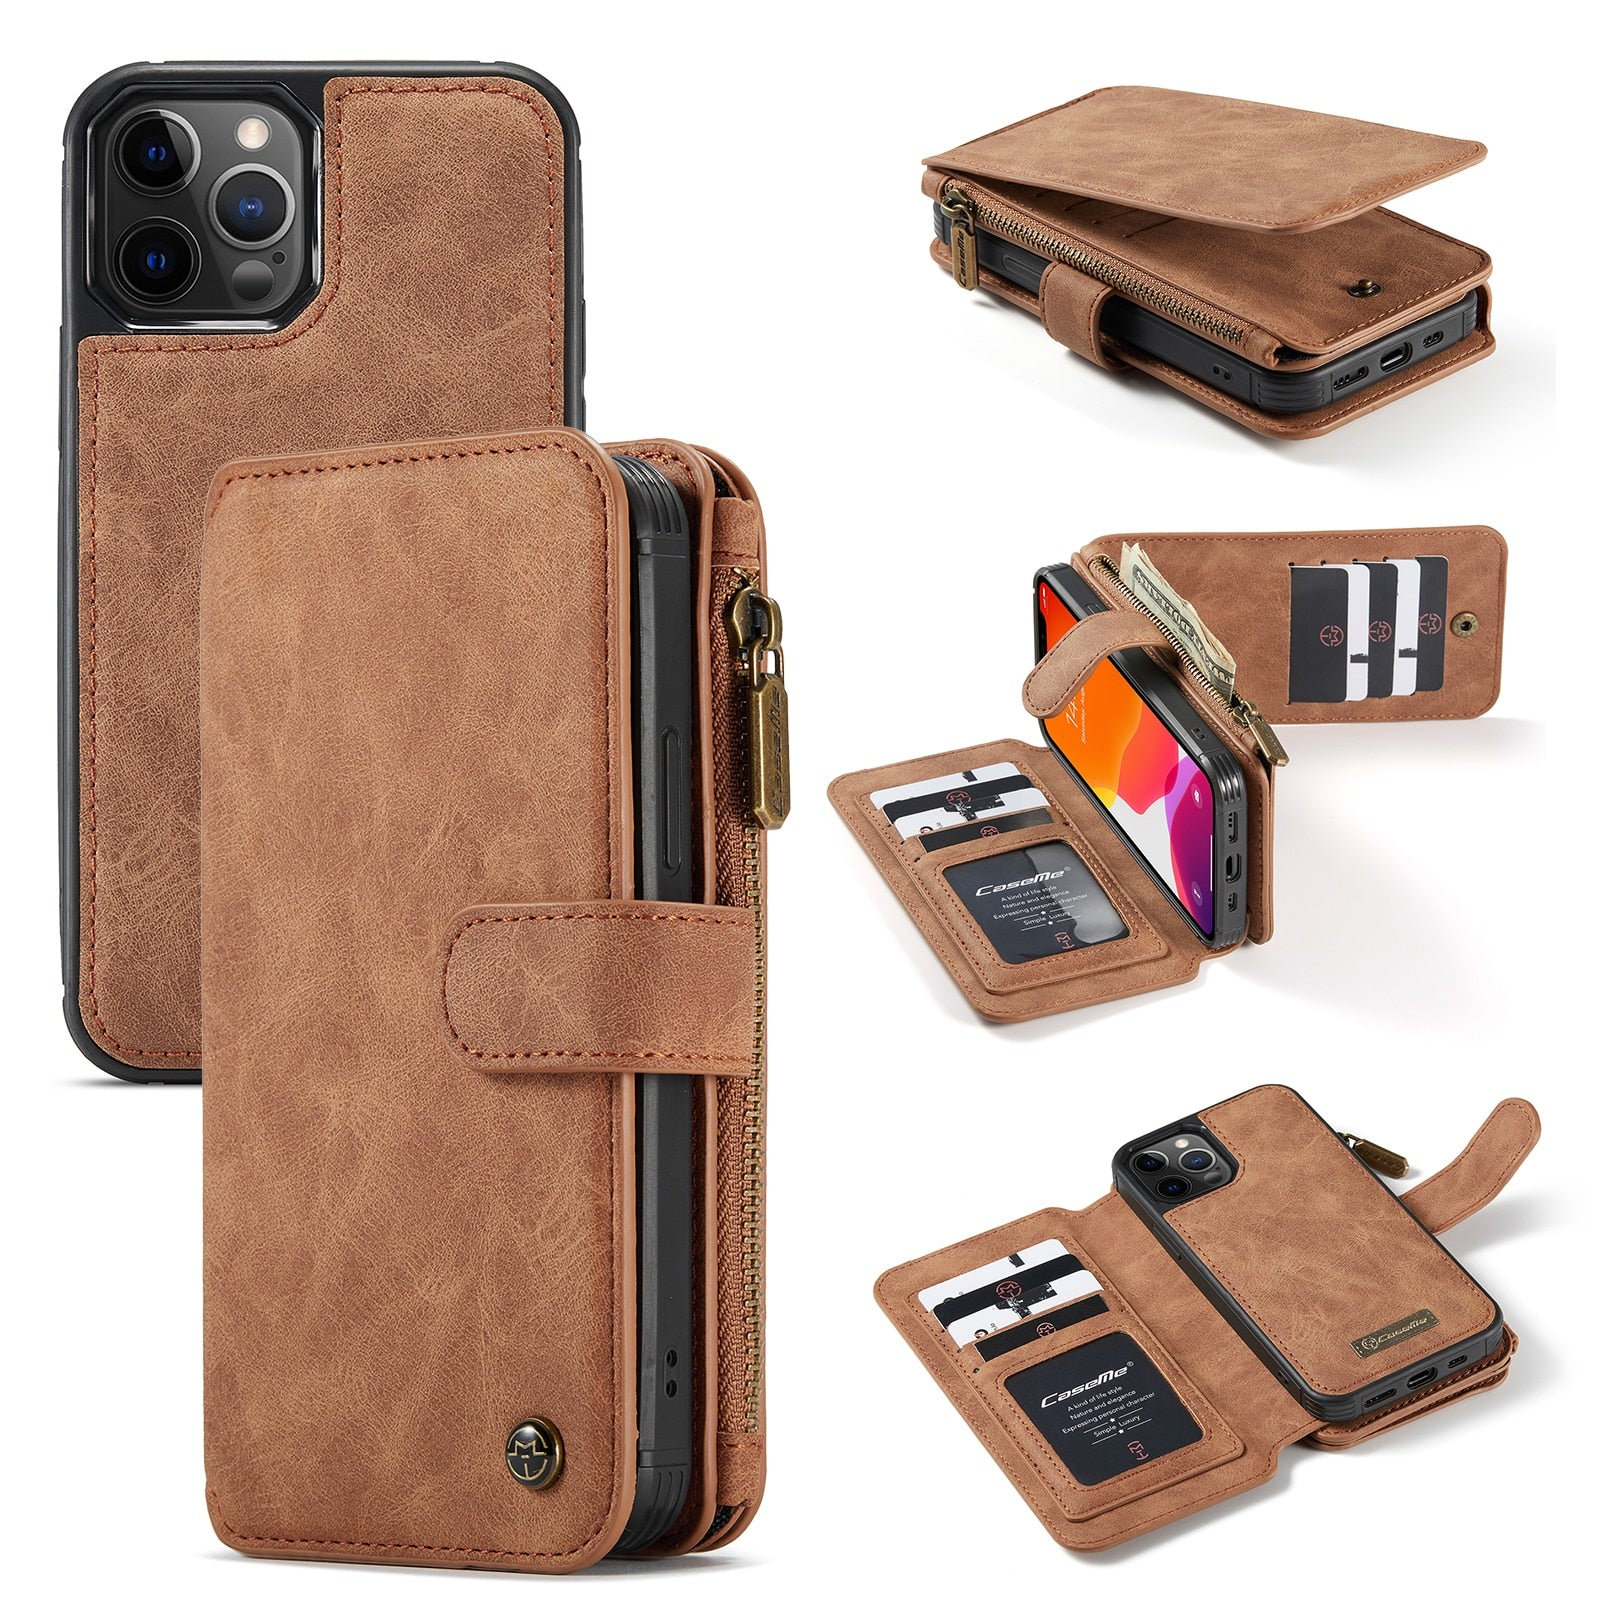 CaseMe For iPhone 12 Pro Max/12 mini Zipper Wallet Leather Original Flip Wallet Case Zipper Flip Leather Cover For iPhone 11 pro